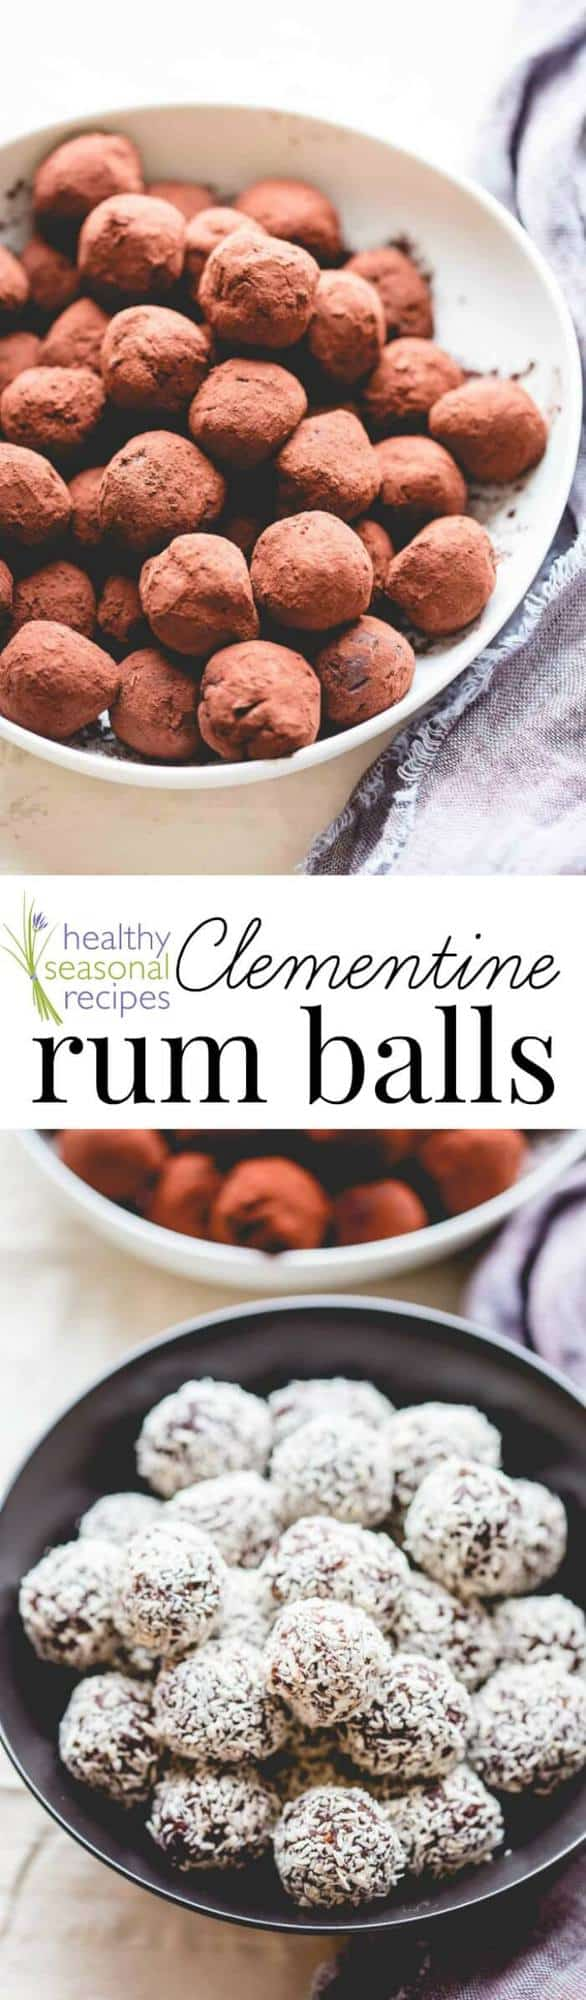 rum ball photo collage with text